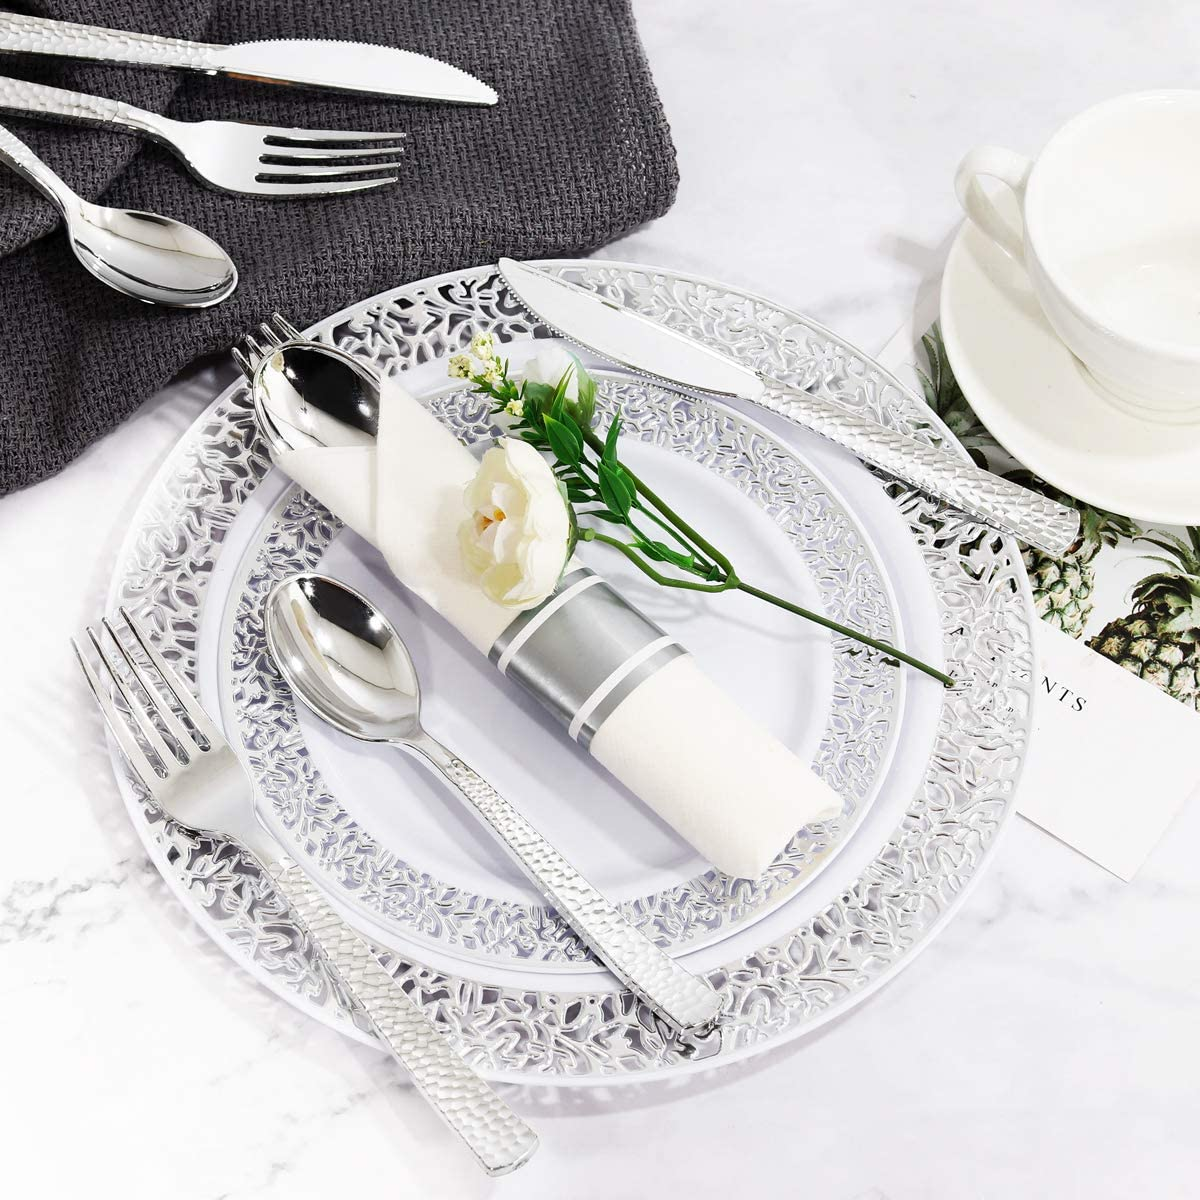 Pre Rolled Napkins with Silver Cutlery 50 Linen Like Napkins 50 Knives Includes: 50 Forks Disposable Silver Flatware 50 Spoons WELLIFE 50 Guests Plastic Silver Hammered Silverware